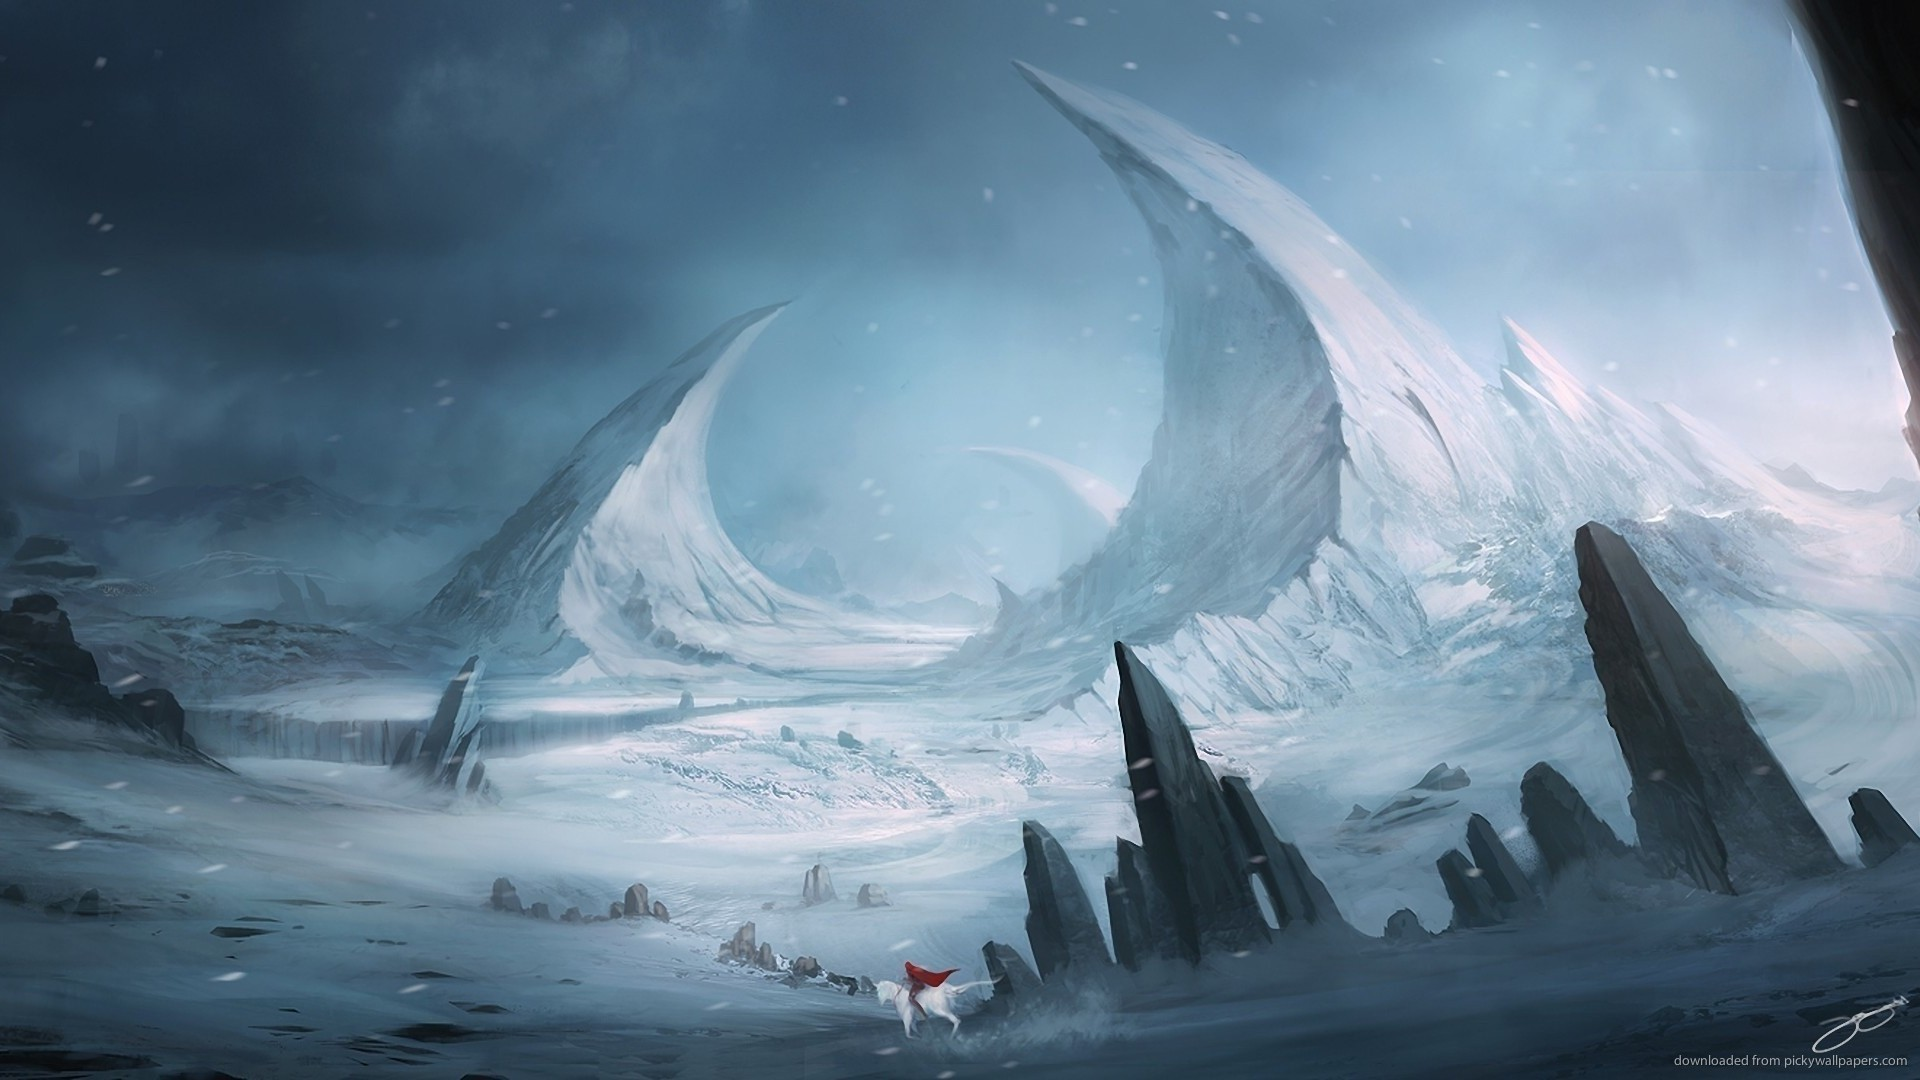 1920x1080 Winter Fantasy Landscape for